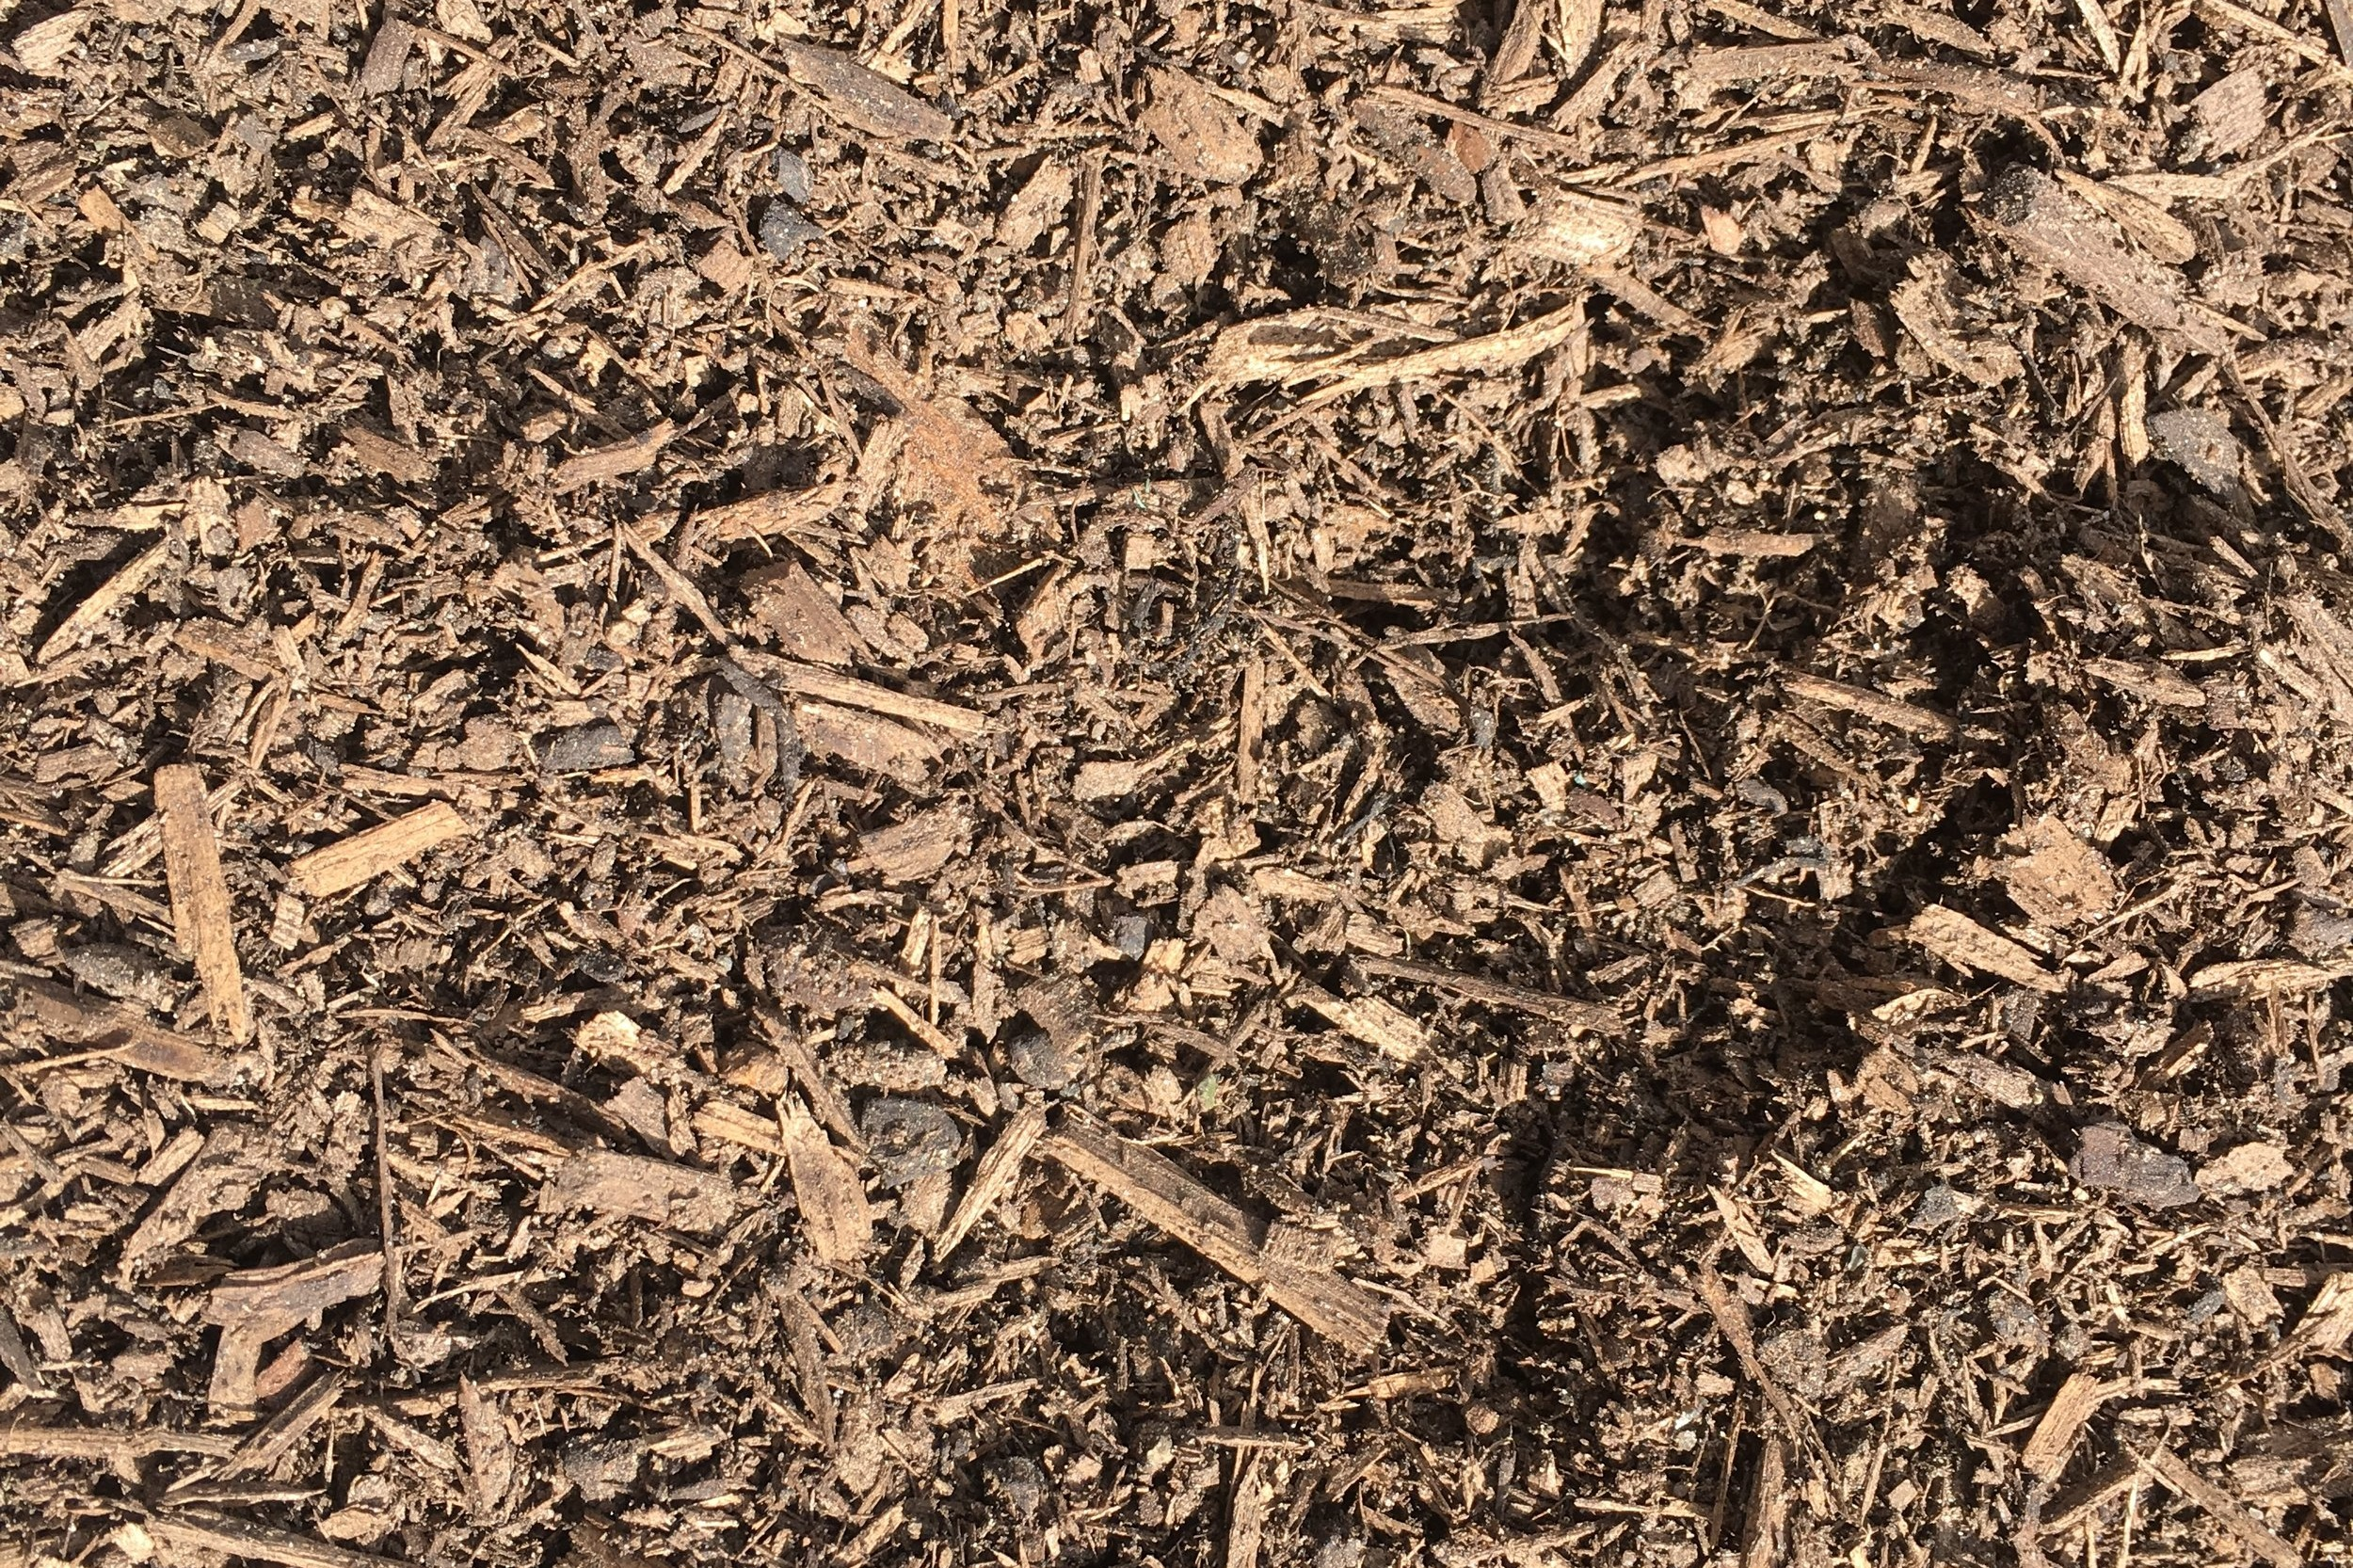 Certified Organic Premium Compost - Scientifically blended mix or pine bark, hardwood saw dust, cow manure, organic seaweed extract and coir peat, all certified organic materials. The blend is composted for up to 12 weeks with constant monitoring of core temperatures and nutrient levels.